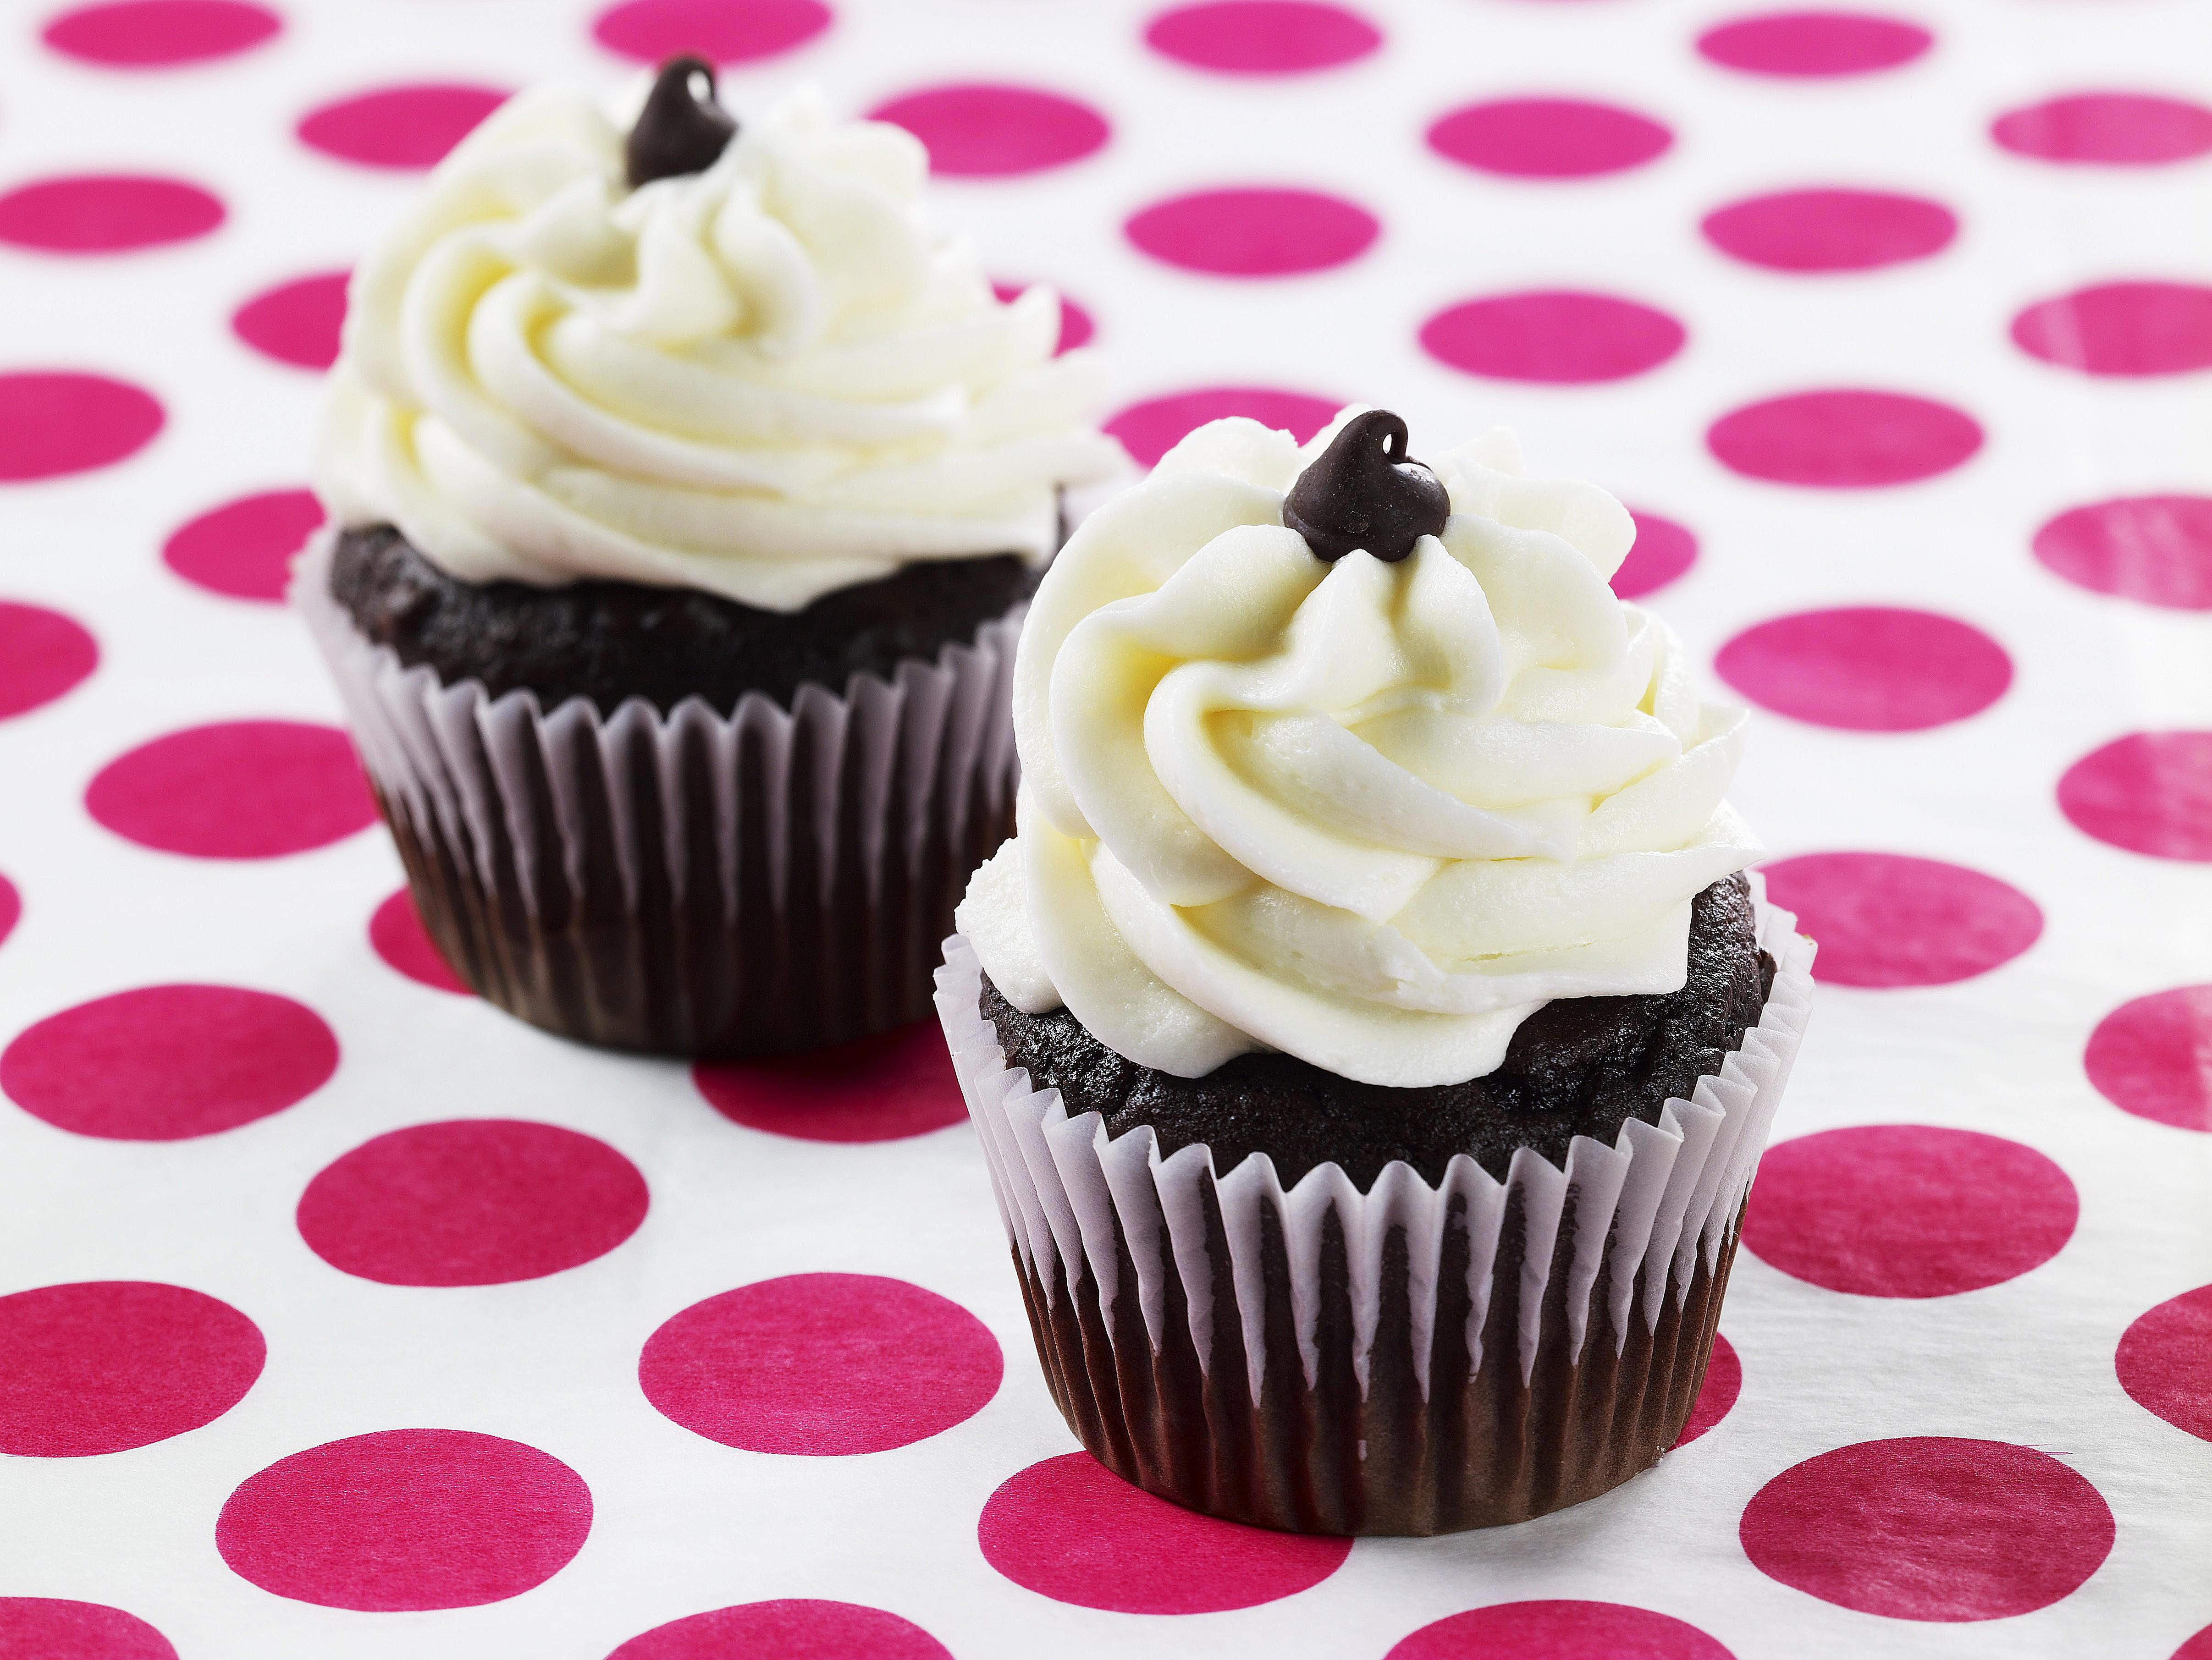 Two velvet cupcakes with icing on spotted surface